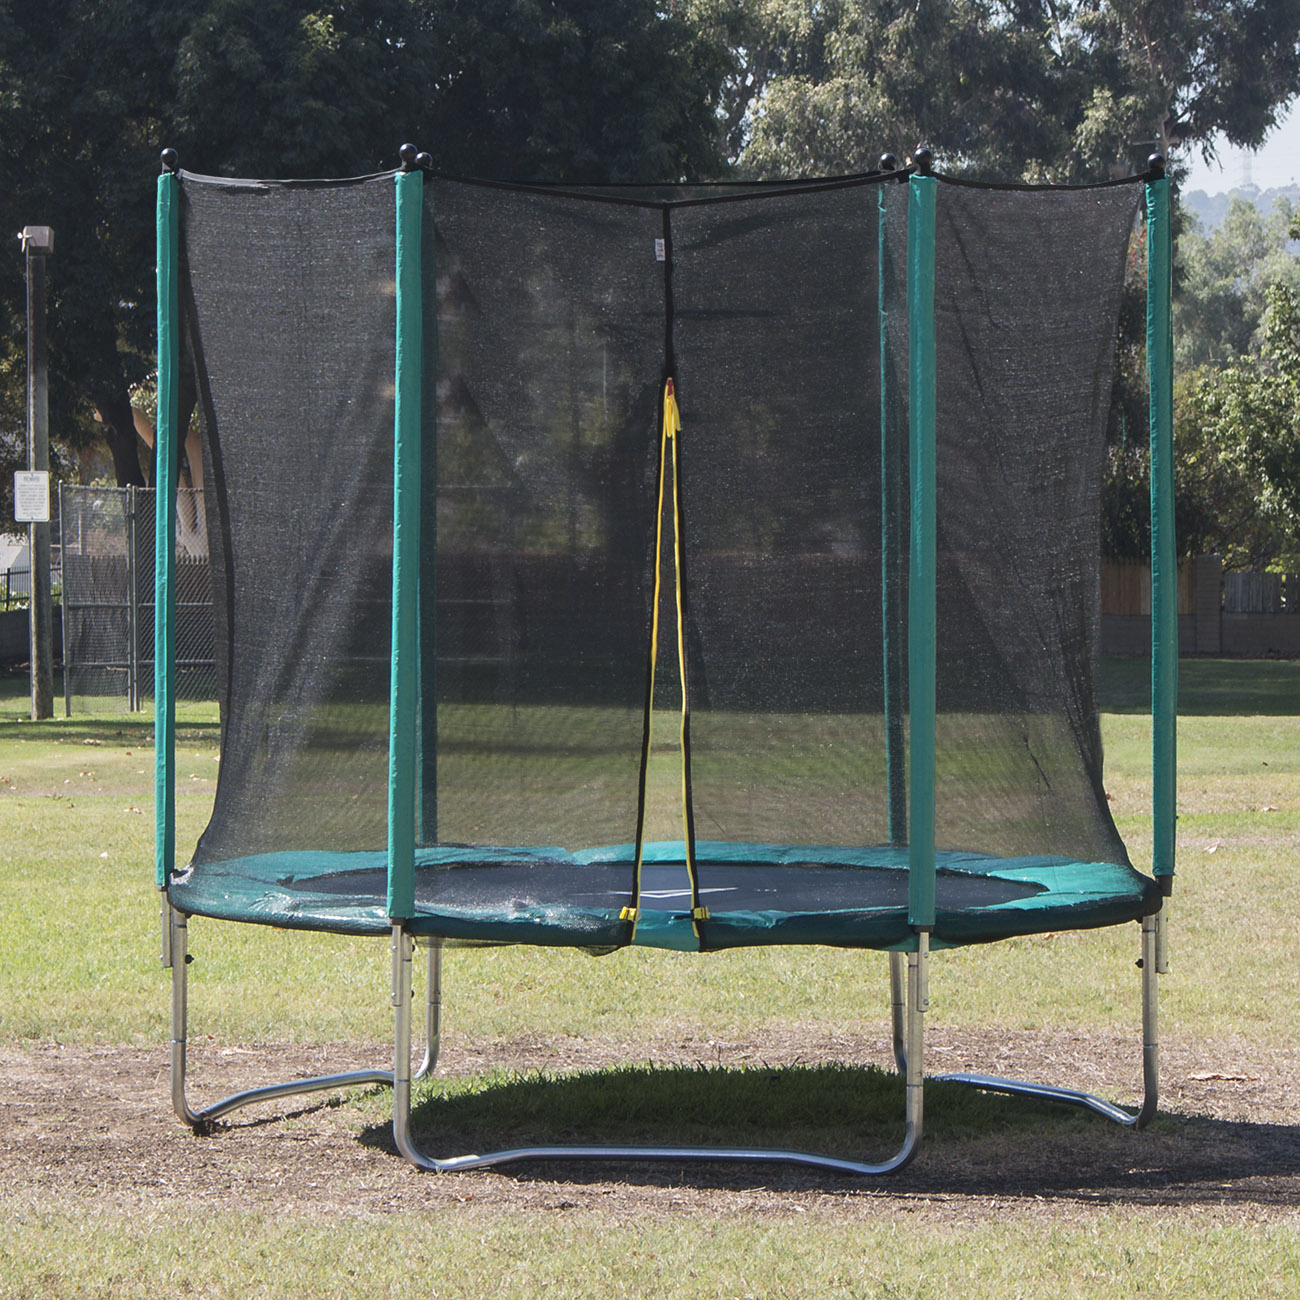 14 Ft Trampoline Combo Bounce Jump Safety W Spring Pad: New 12 FT Trampoline Combo Bounce Jump Safety Enclosure